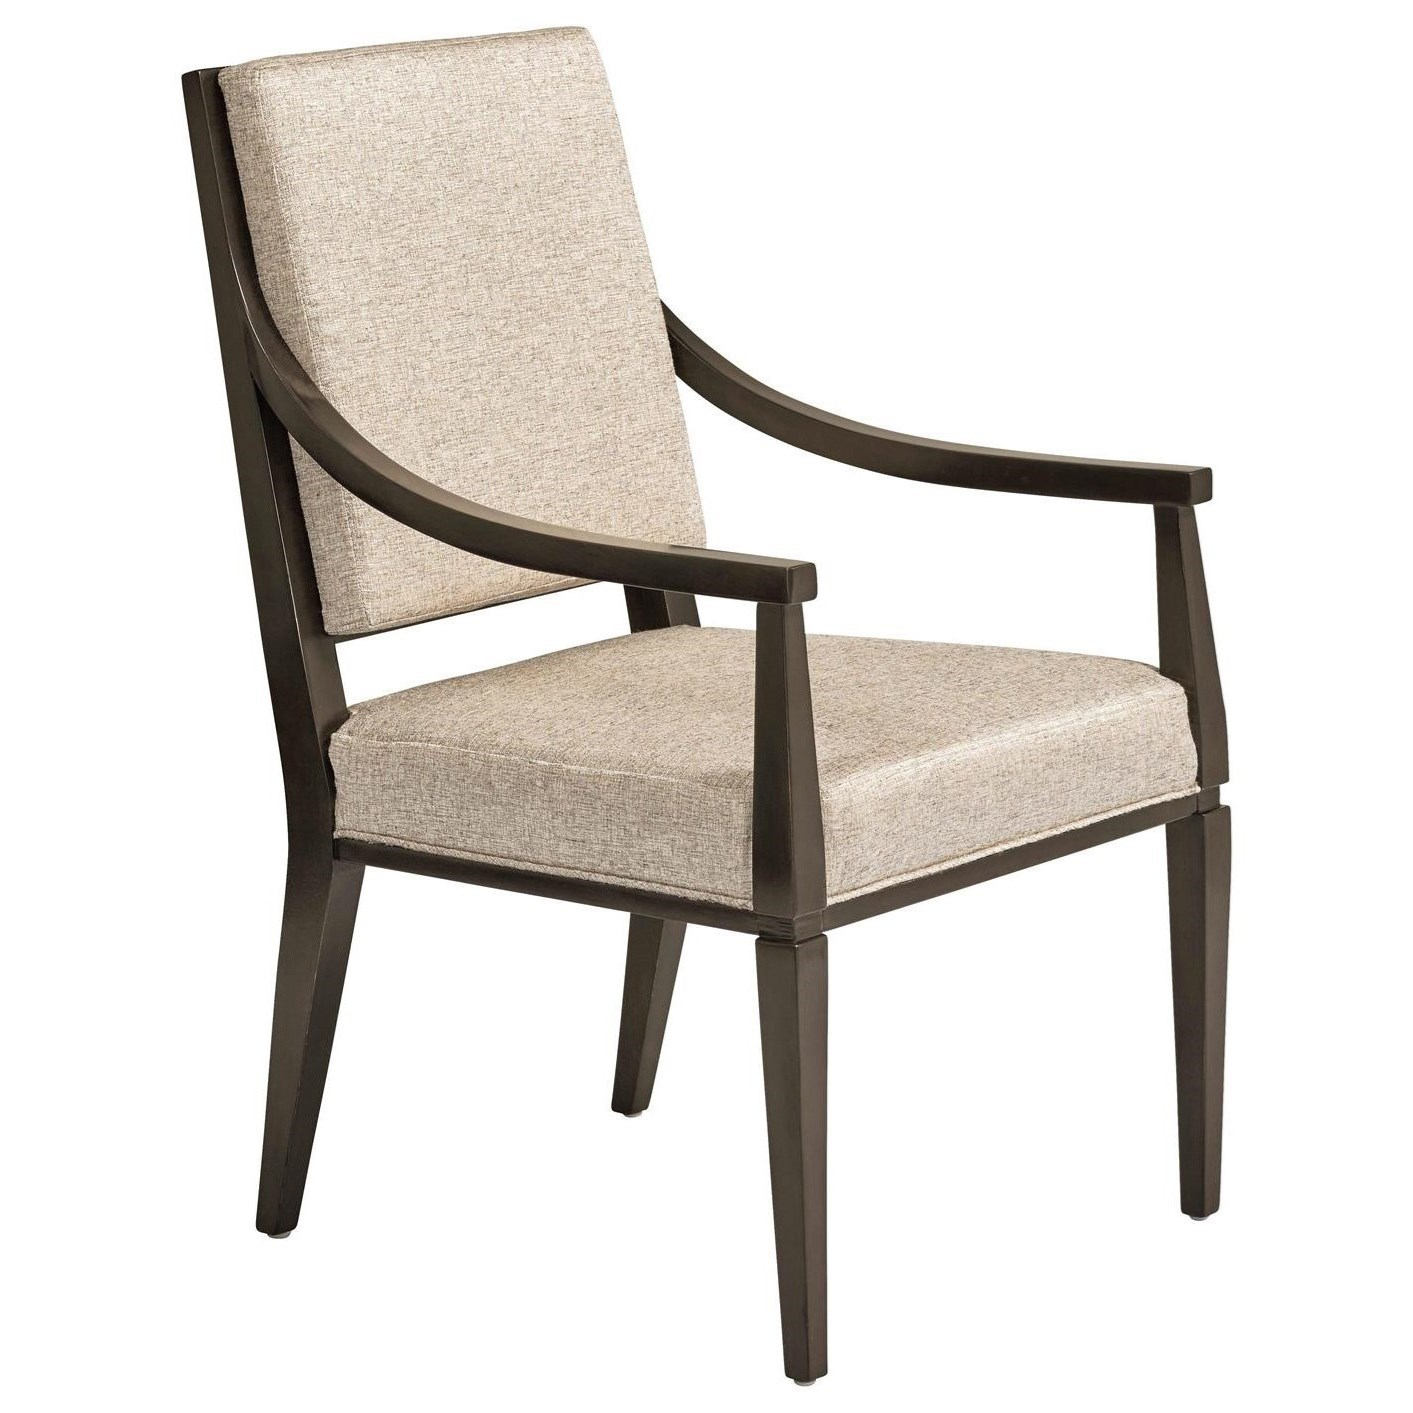 upholstered arm dining chair inglesina fast table fine furniture design deco 1680 821 spirales decospirales